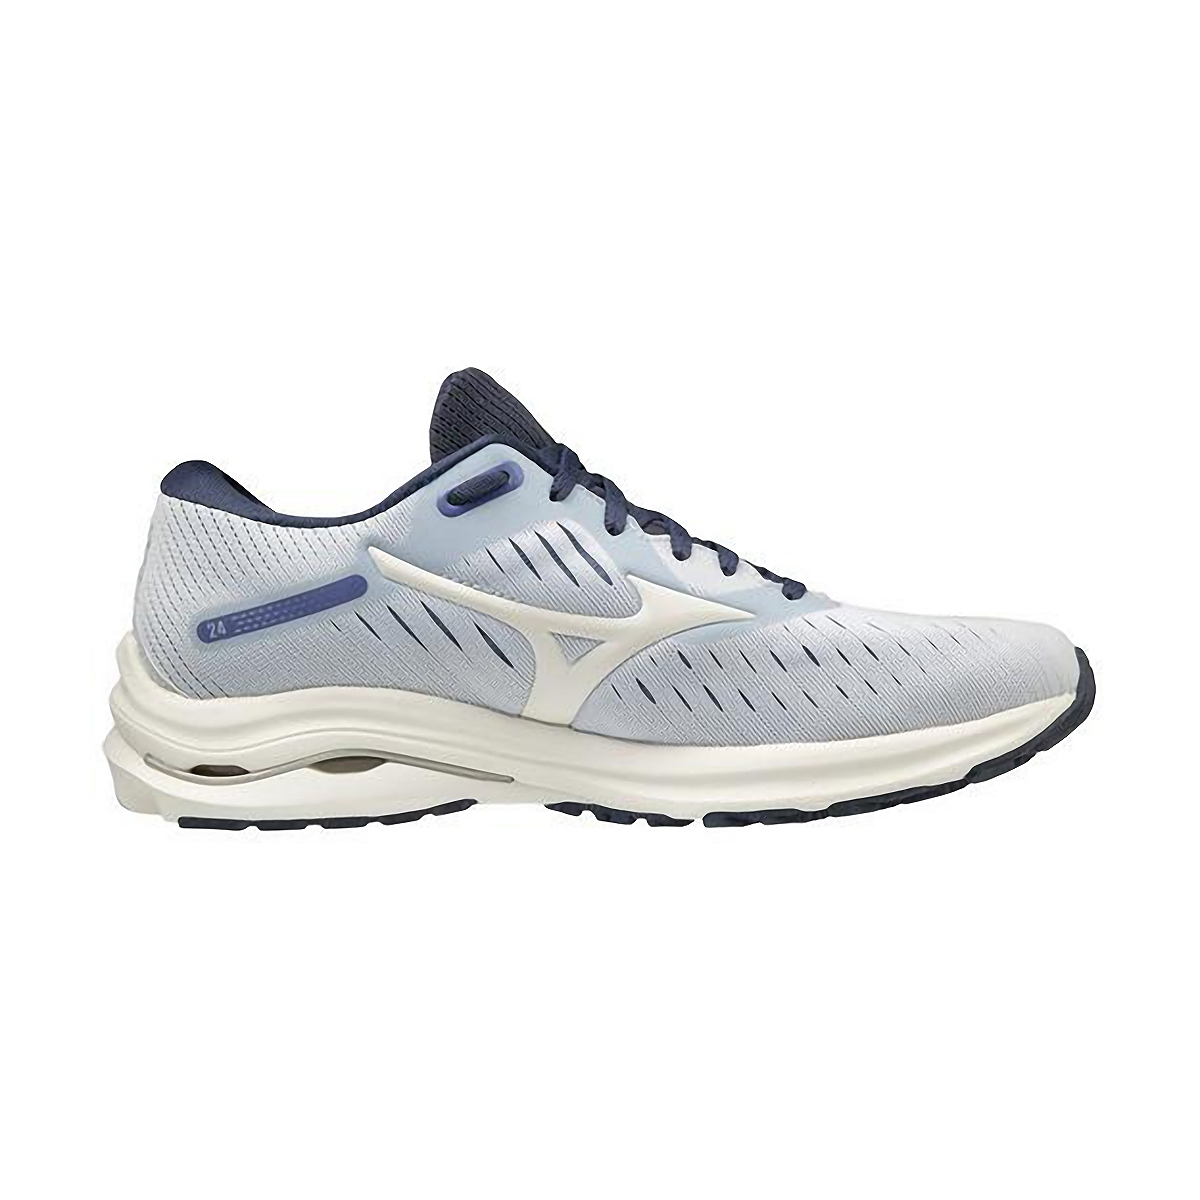 Women's Mizuno Wave Rider 24 Running Shoe - Color: Arctic Ice/Snow White - Size: 6 - Width: Regular, Arctic Ice/Snow White, large, image 4